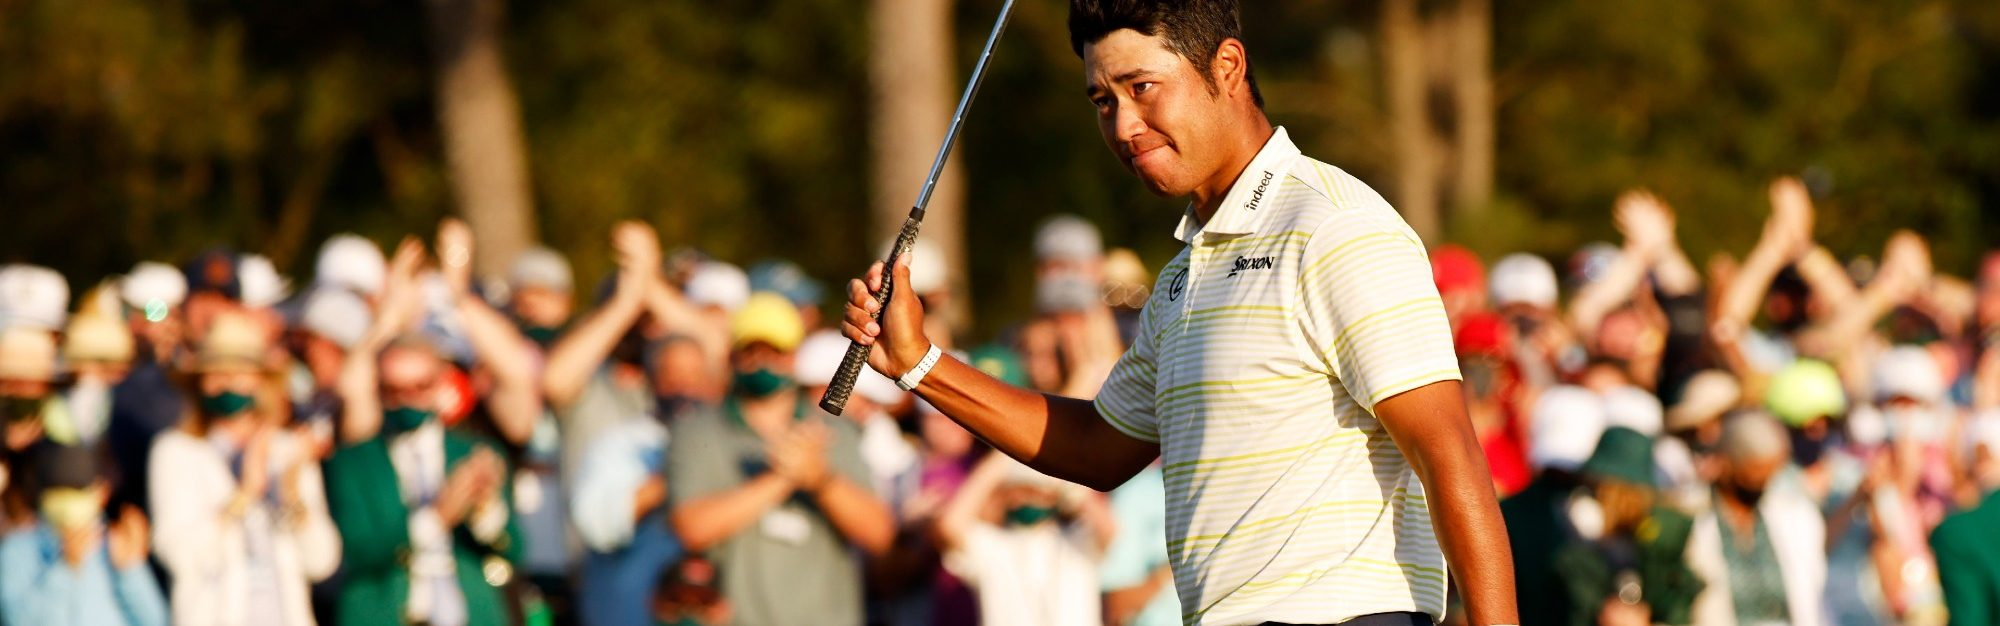 History is made! Matsuyama clings on for Masters glory on dramatic final day at Augusta